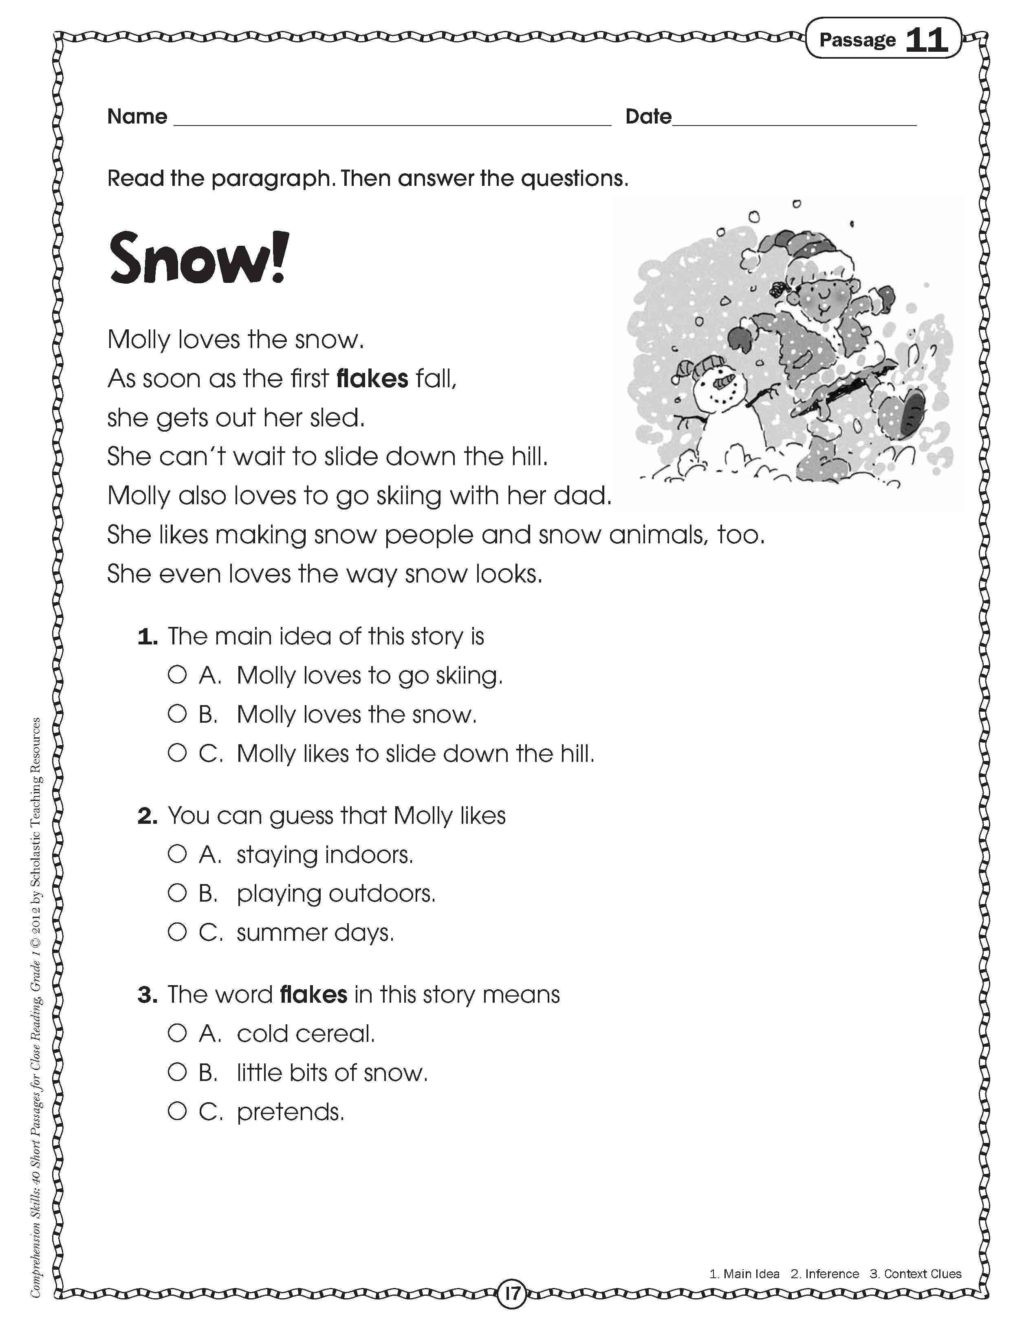 Making Inference Worksheets 4th Grade Worksheet Fabulousn Worksheets Grade Fun Printable and